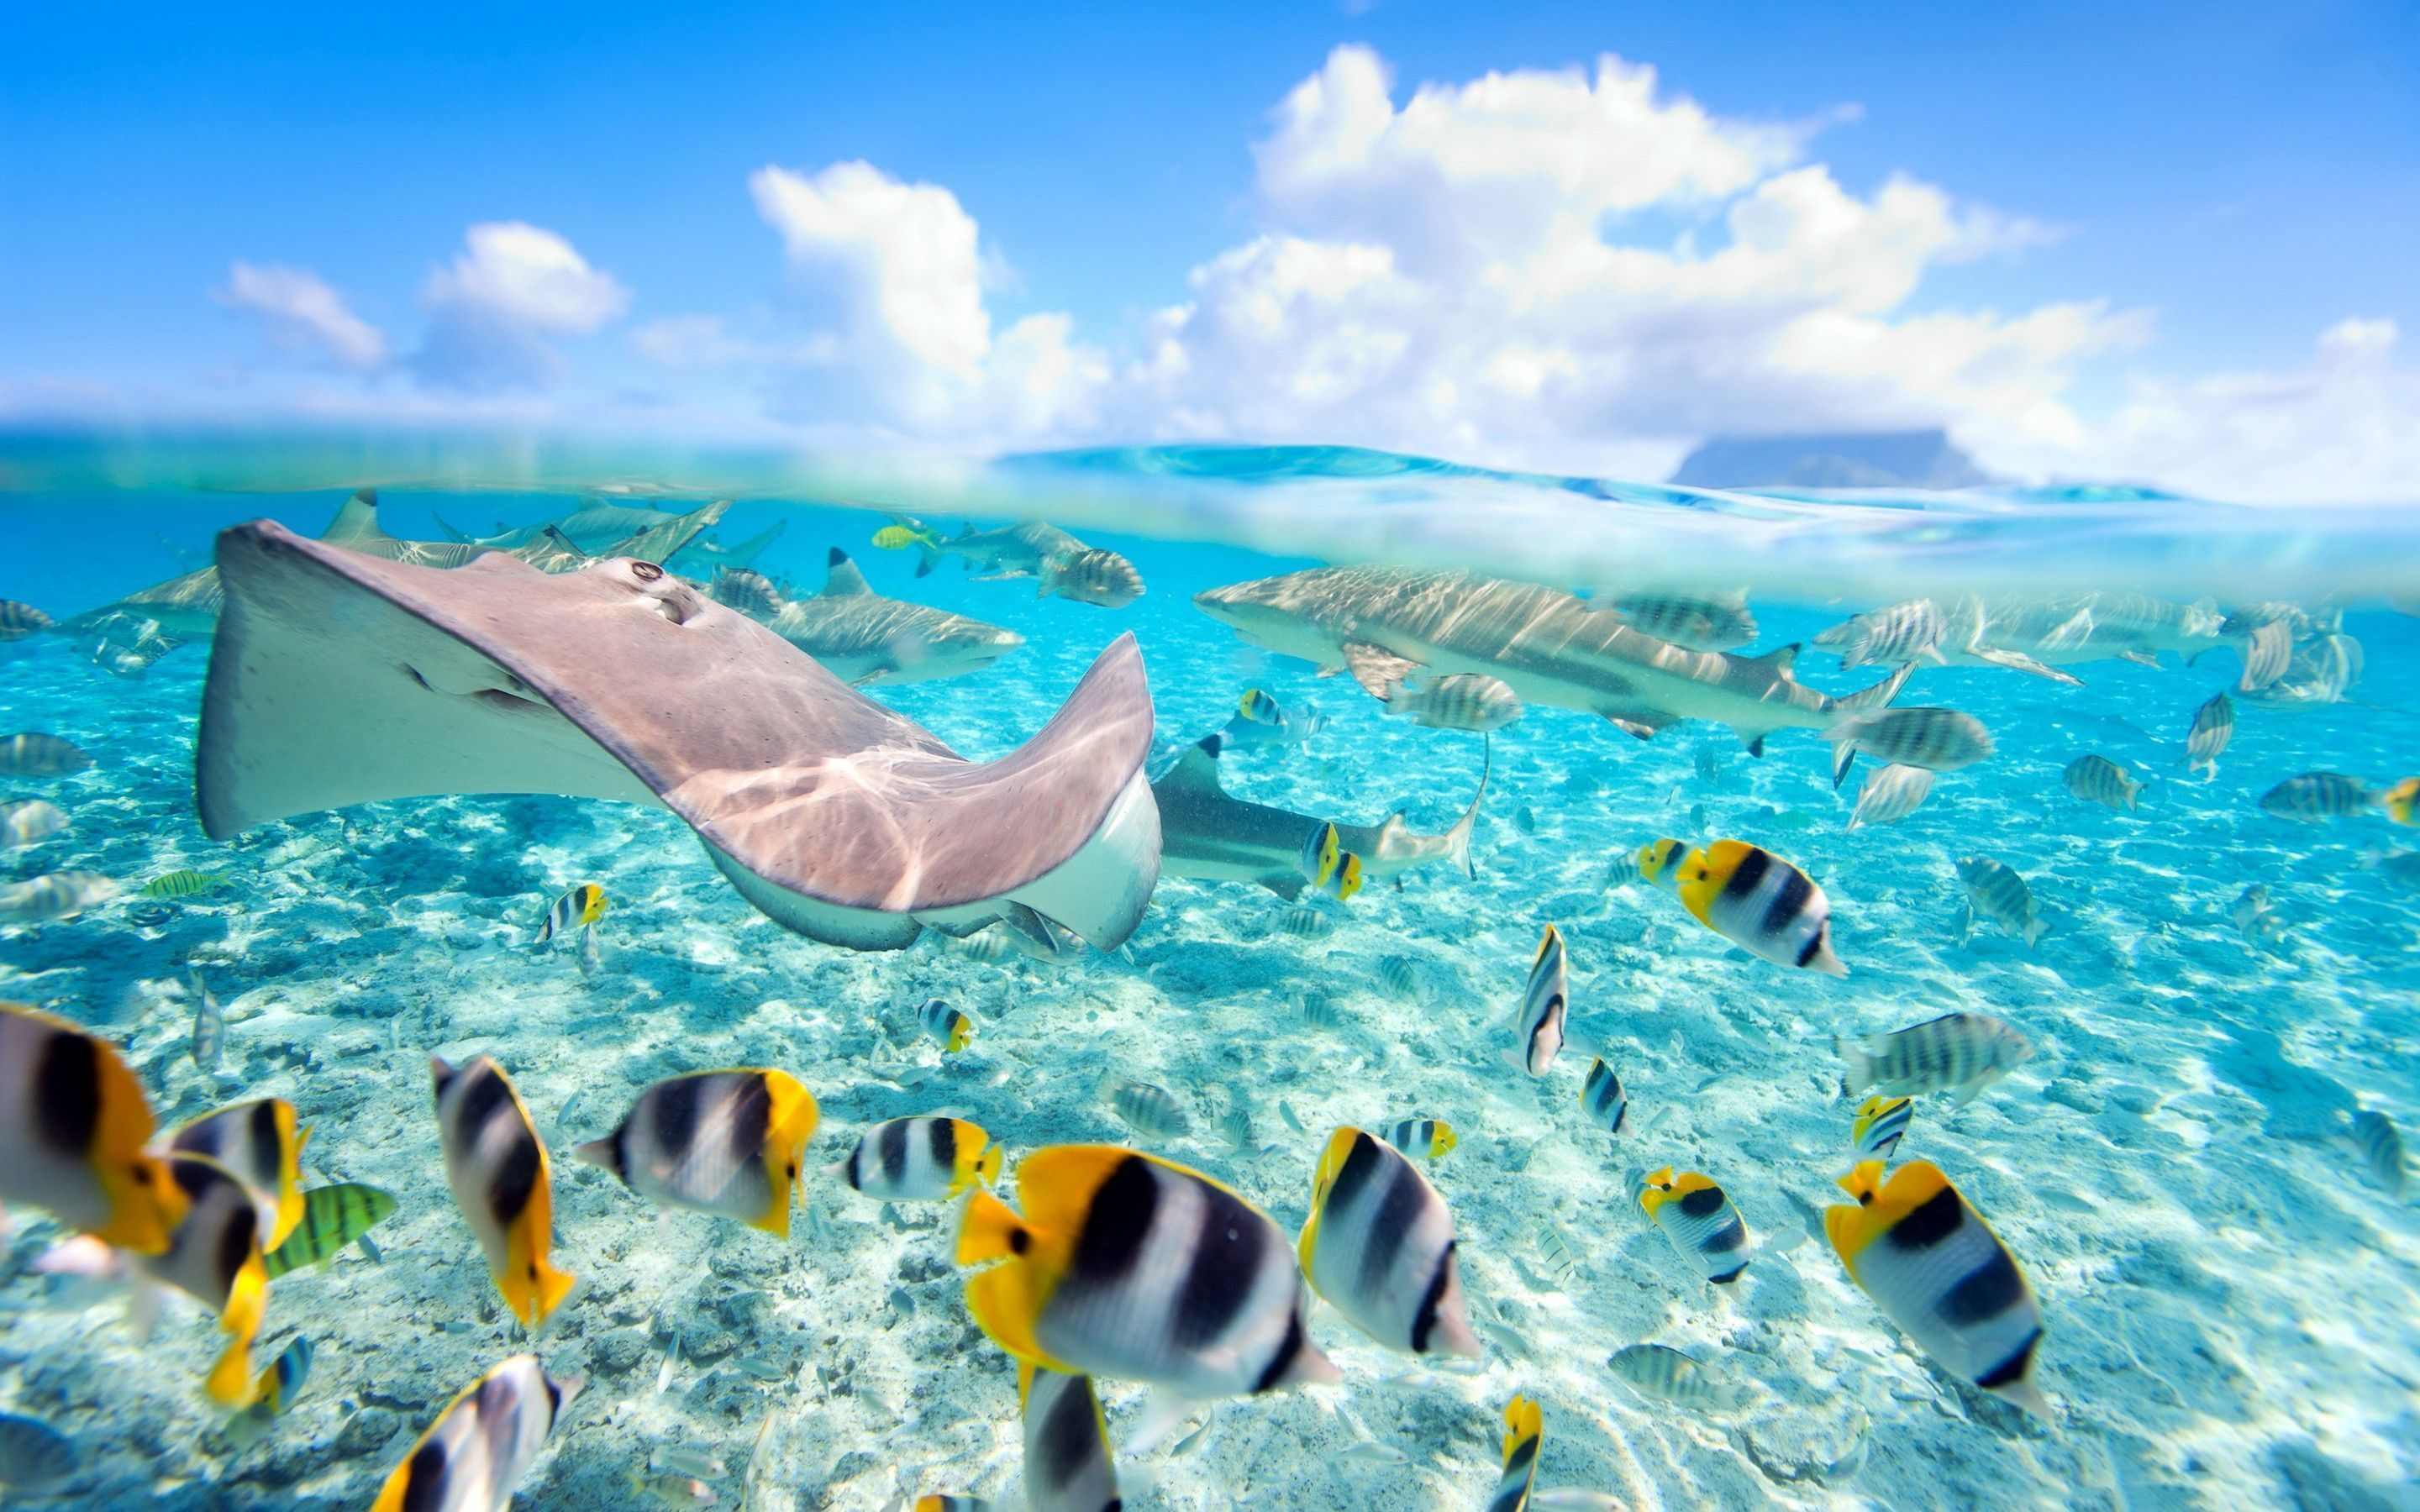 Hawaii Exotic Fish Crystal Clear Water Underwater World